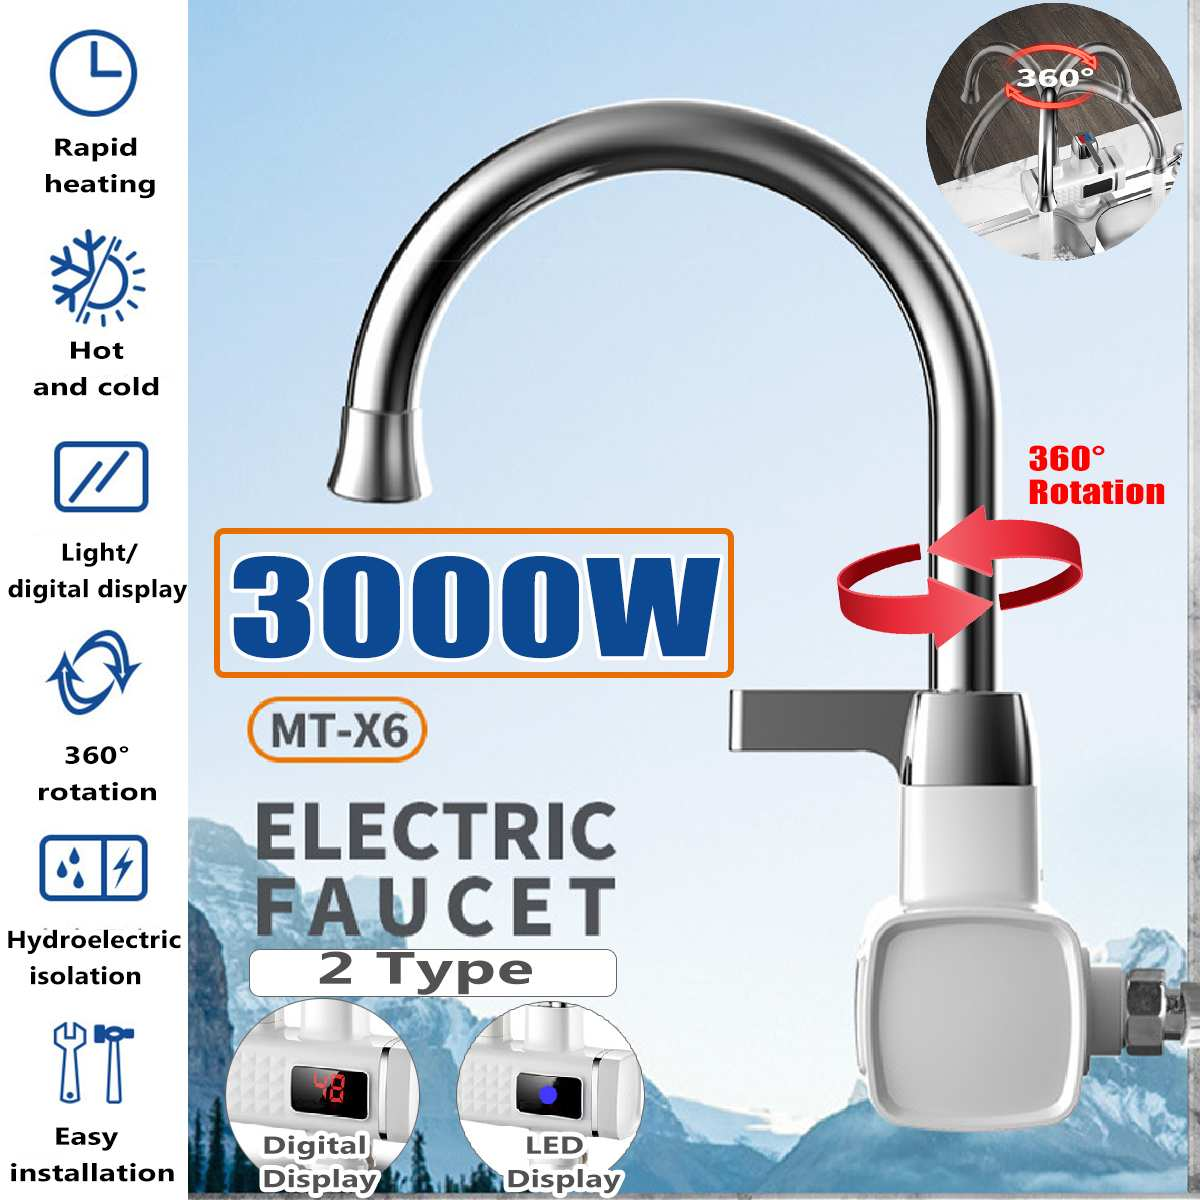 3000W Digital LED Display Instant Hot Water Tap Tankless Electric Faucet Kitchen Instant Hot Faucet Water Heater Water Heating